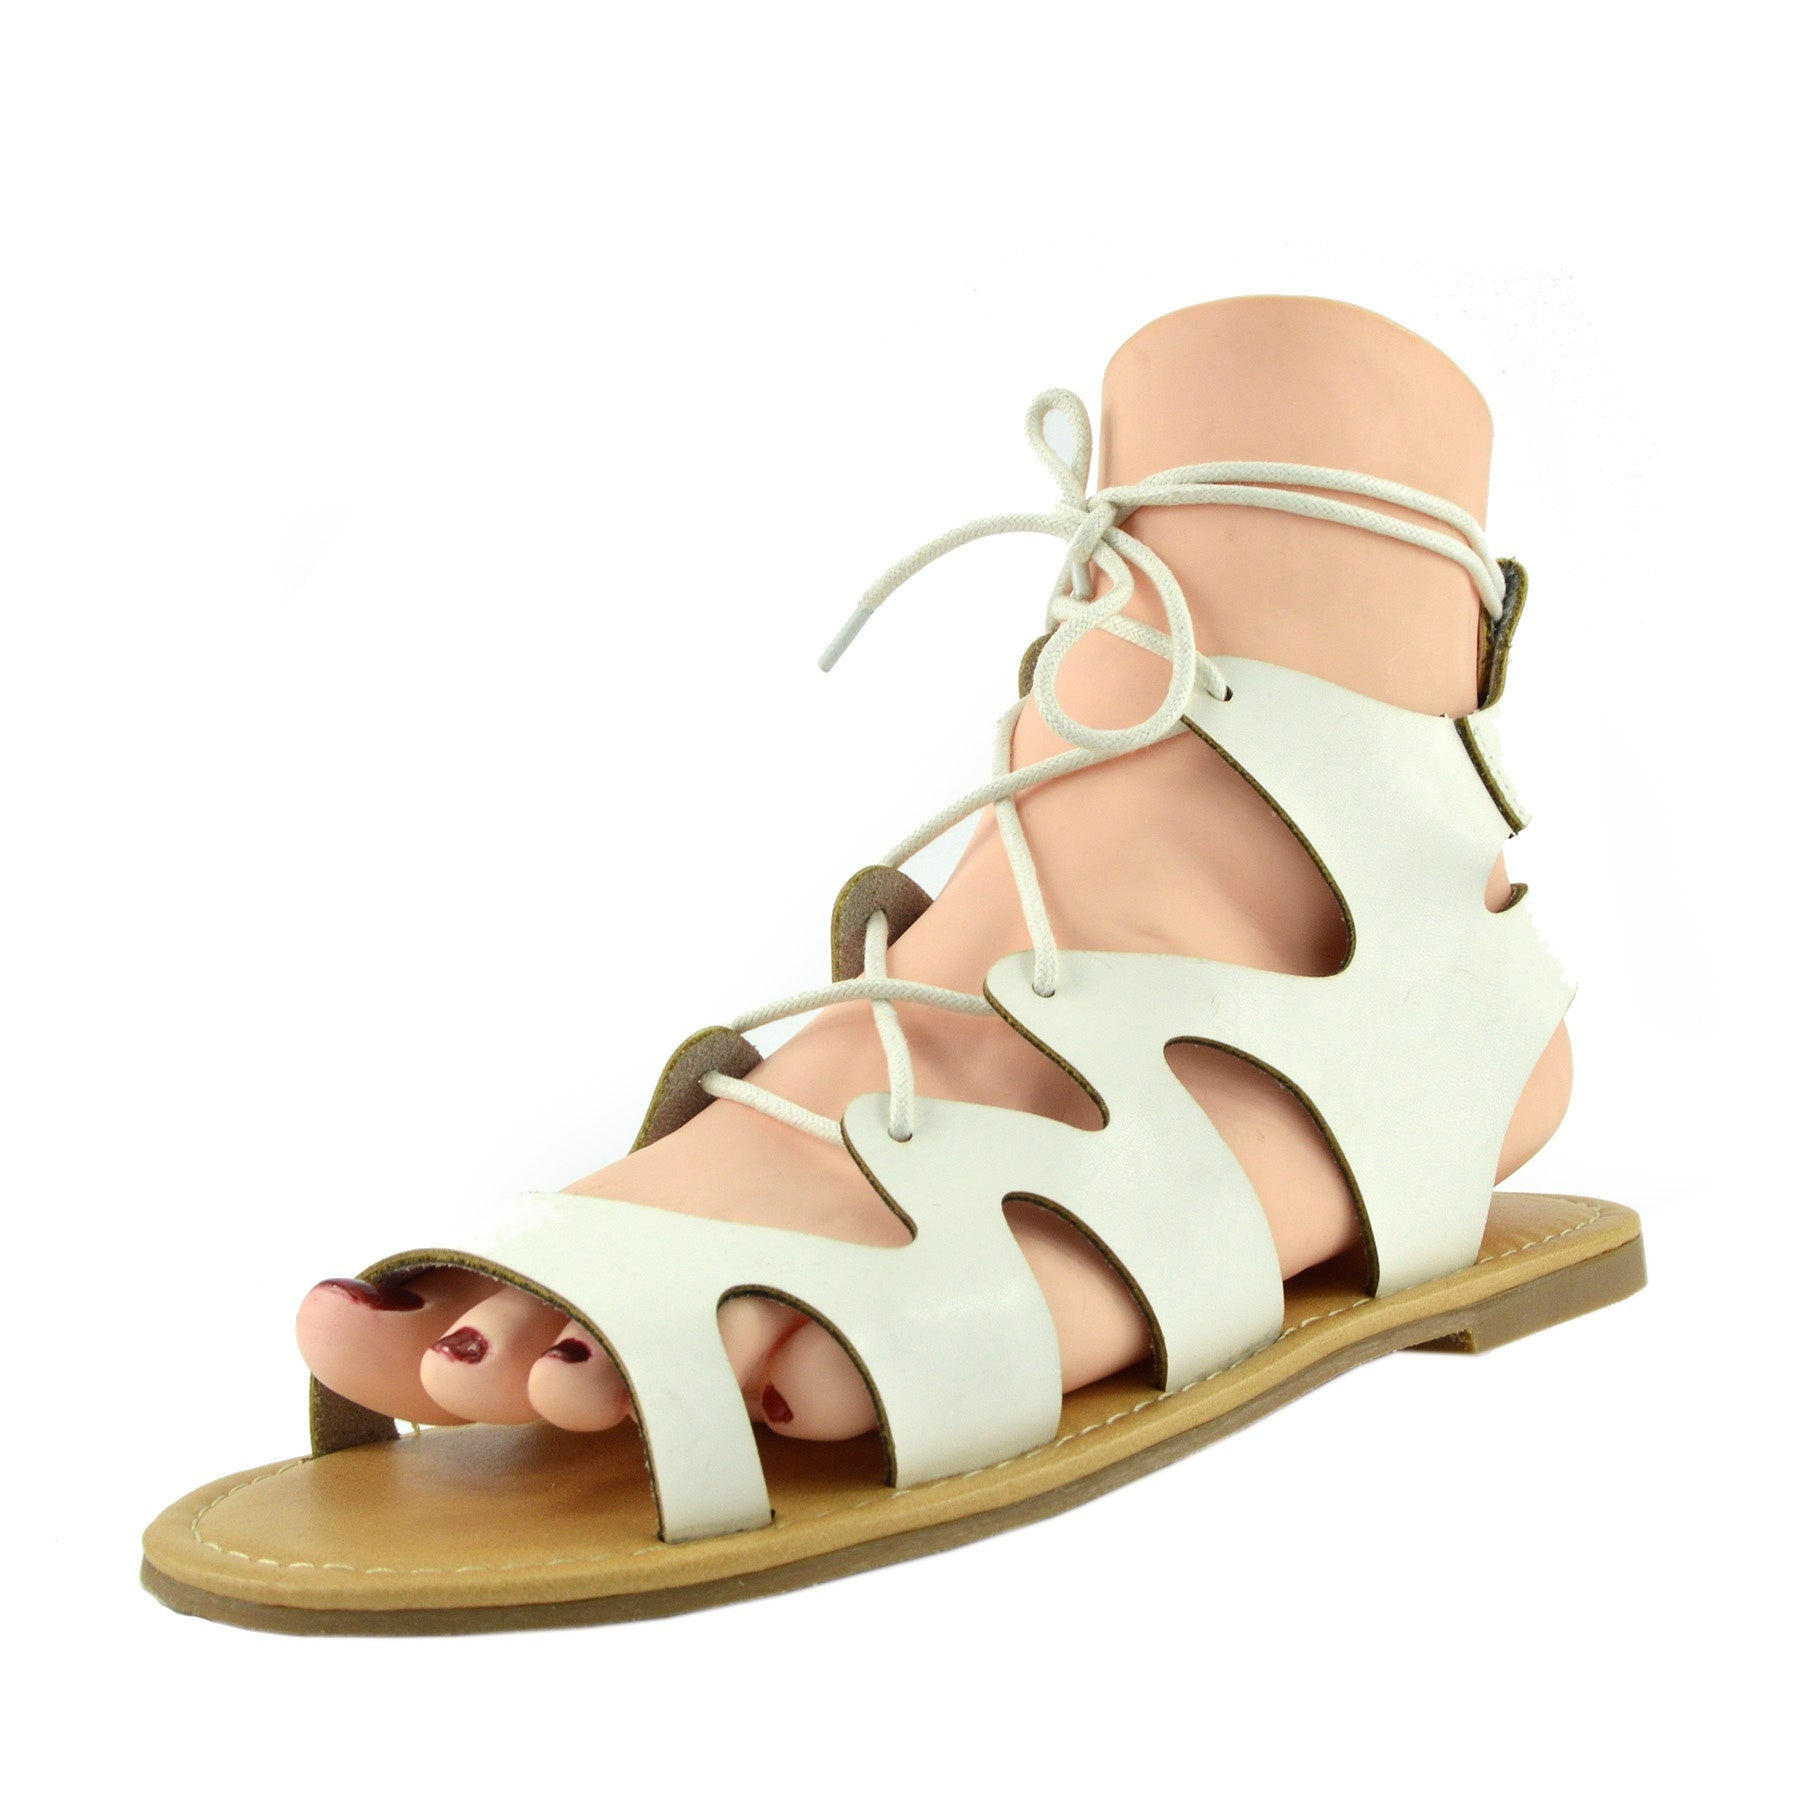 087be8d86e5 Leah Flat Gladiator Lace up Sandals - White - Kickfootwear